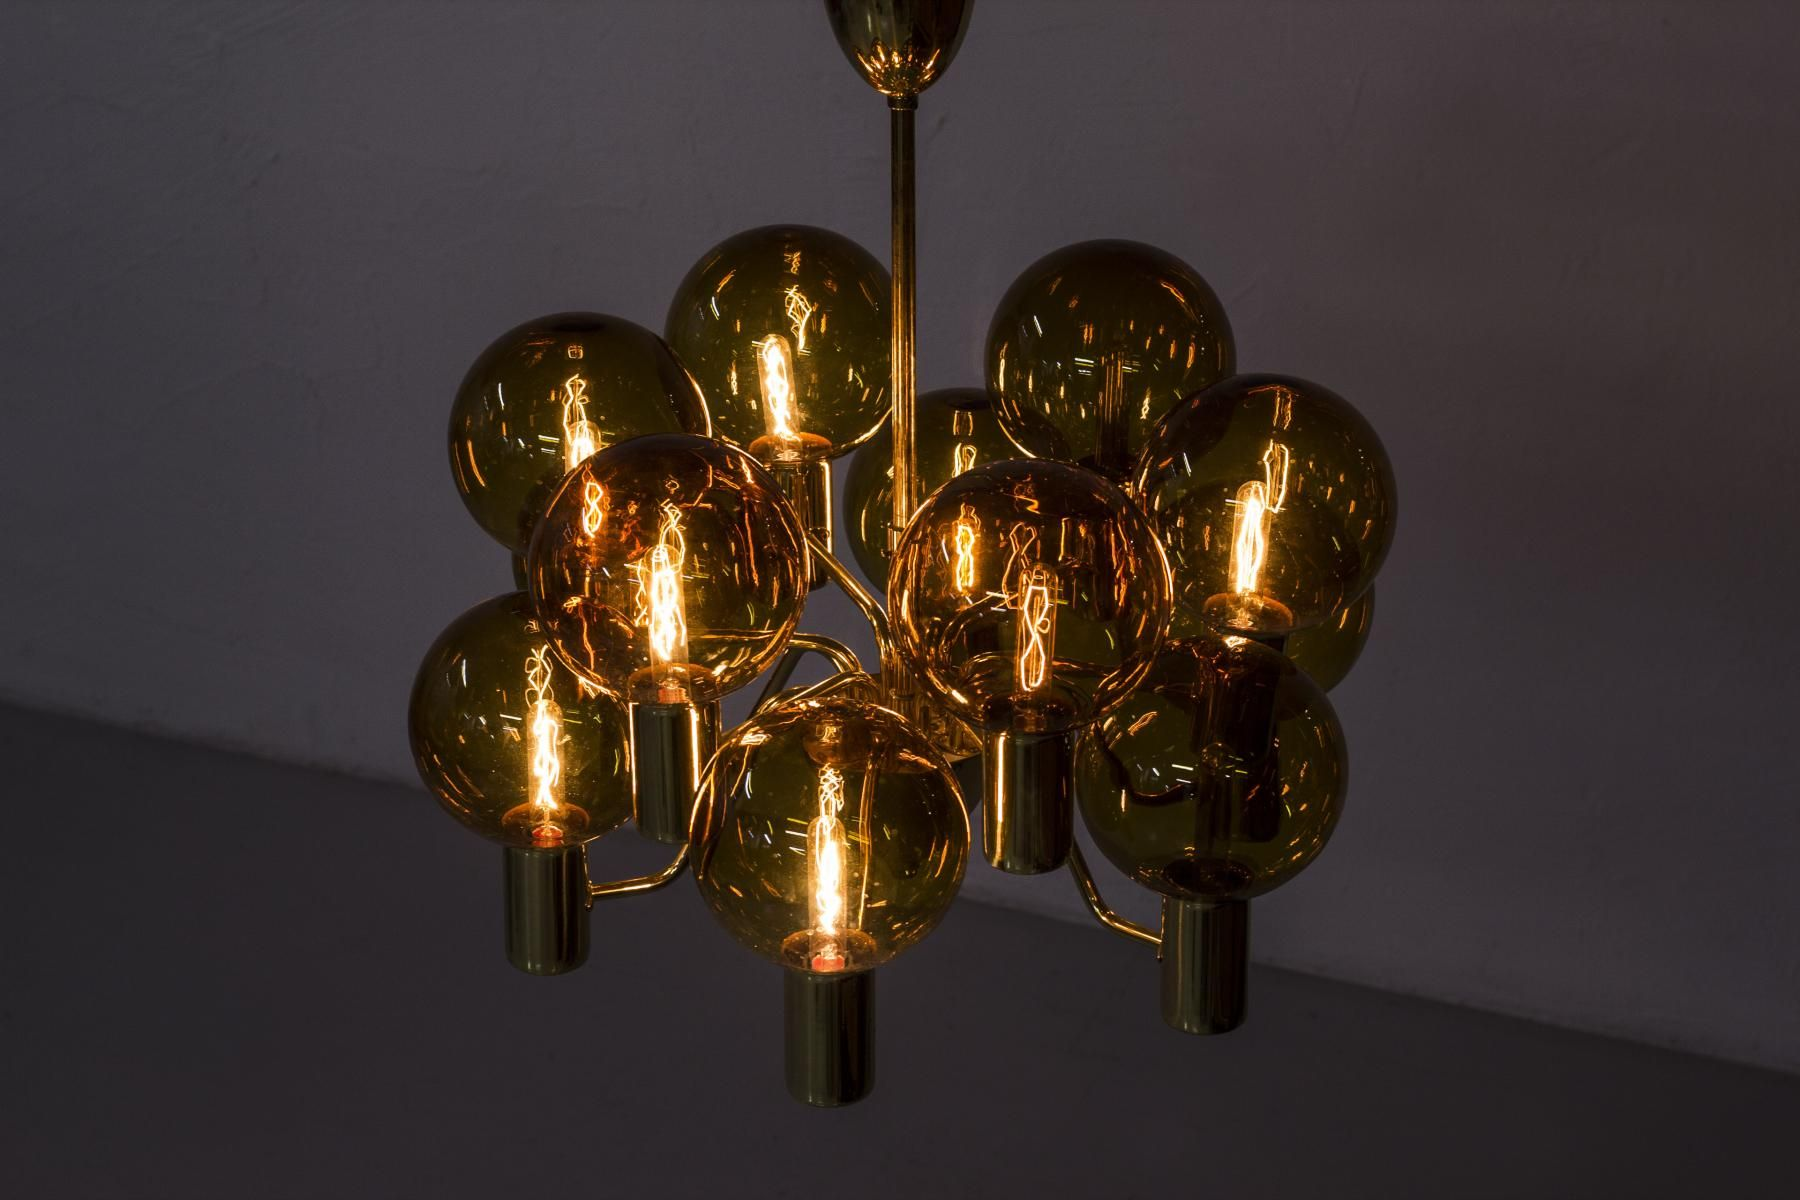 Mid century swedish chandelier by hans agne jakobsson for hans agne mid century swedish chandelier by hans agne jakobsson for hans agne jakobsson ab markaryd 1960s mozeypictures Choice Image